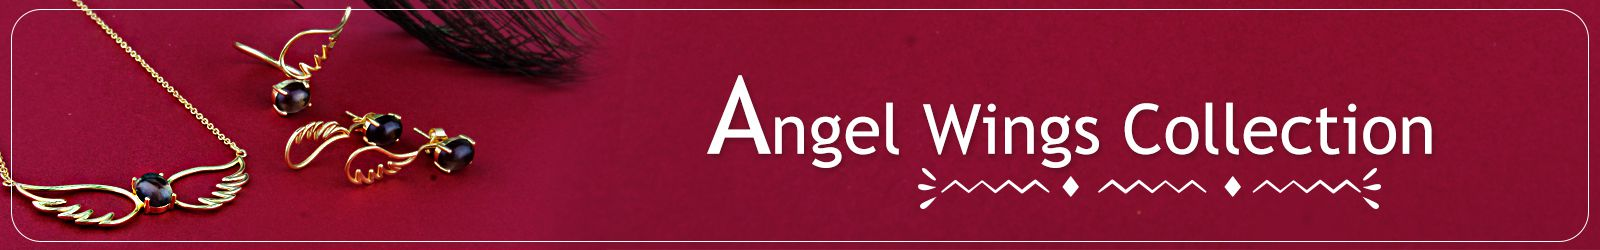 Angel Wings Jewelry Collections